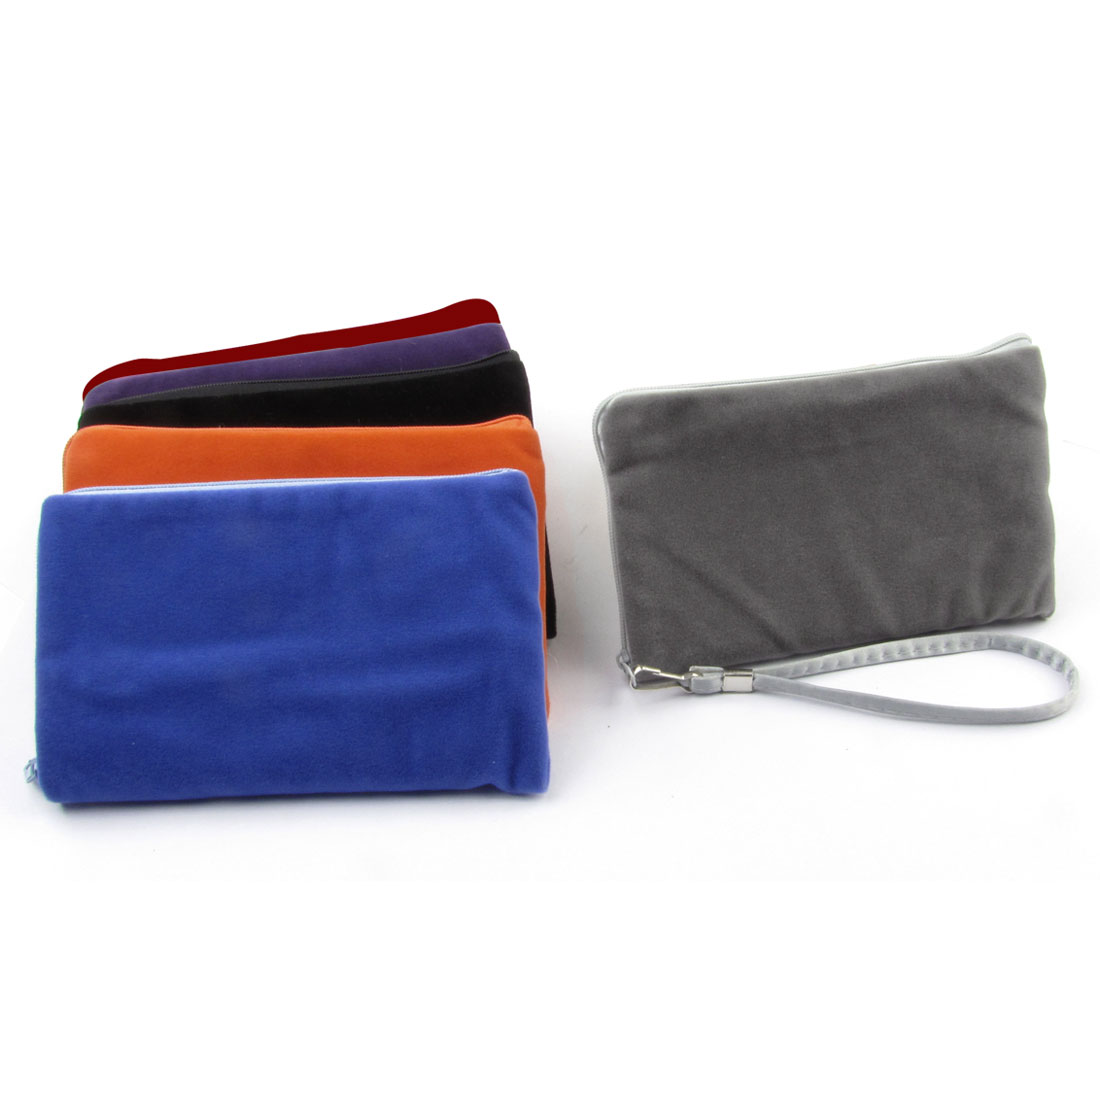 6 Pcs Women Zipper Closure One Pocket Assorted Color Wallet Purse w Hand Strap